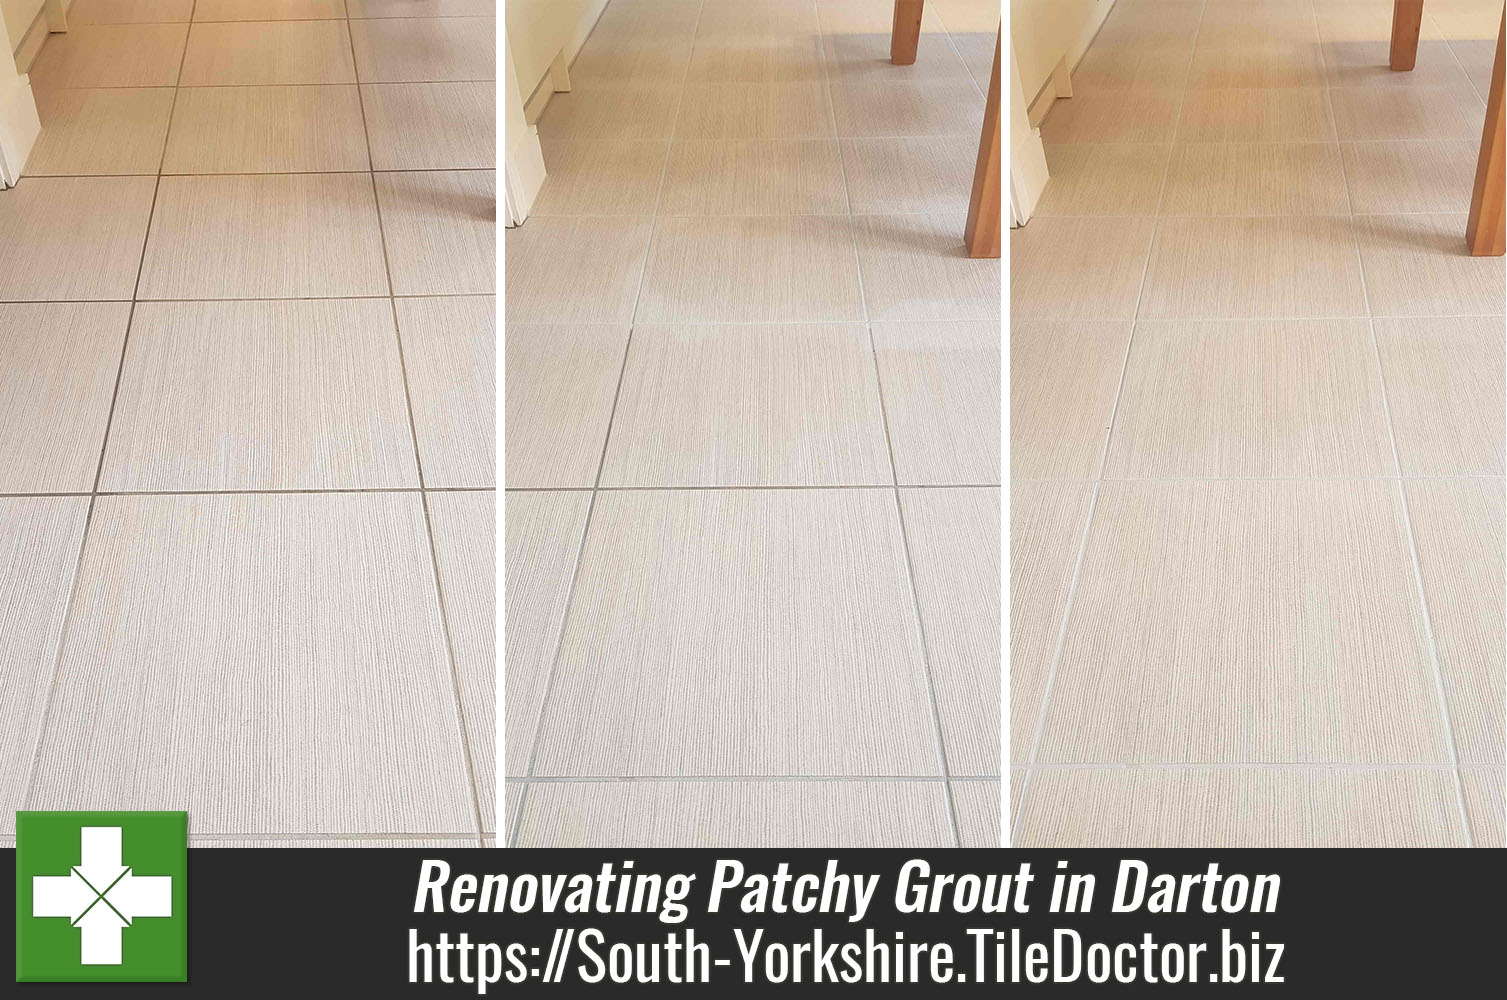 Porcelain-Floor-Tile-Grout-Before-After-Renovation-Darton